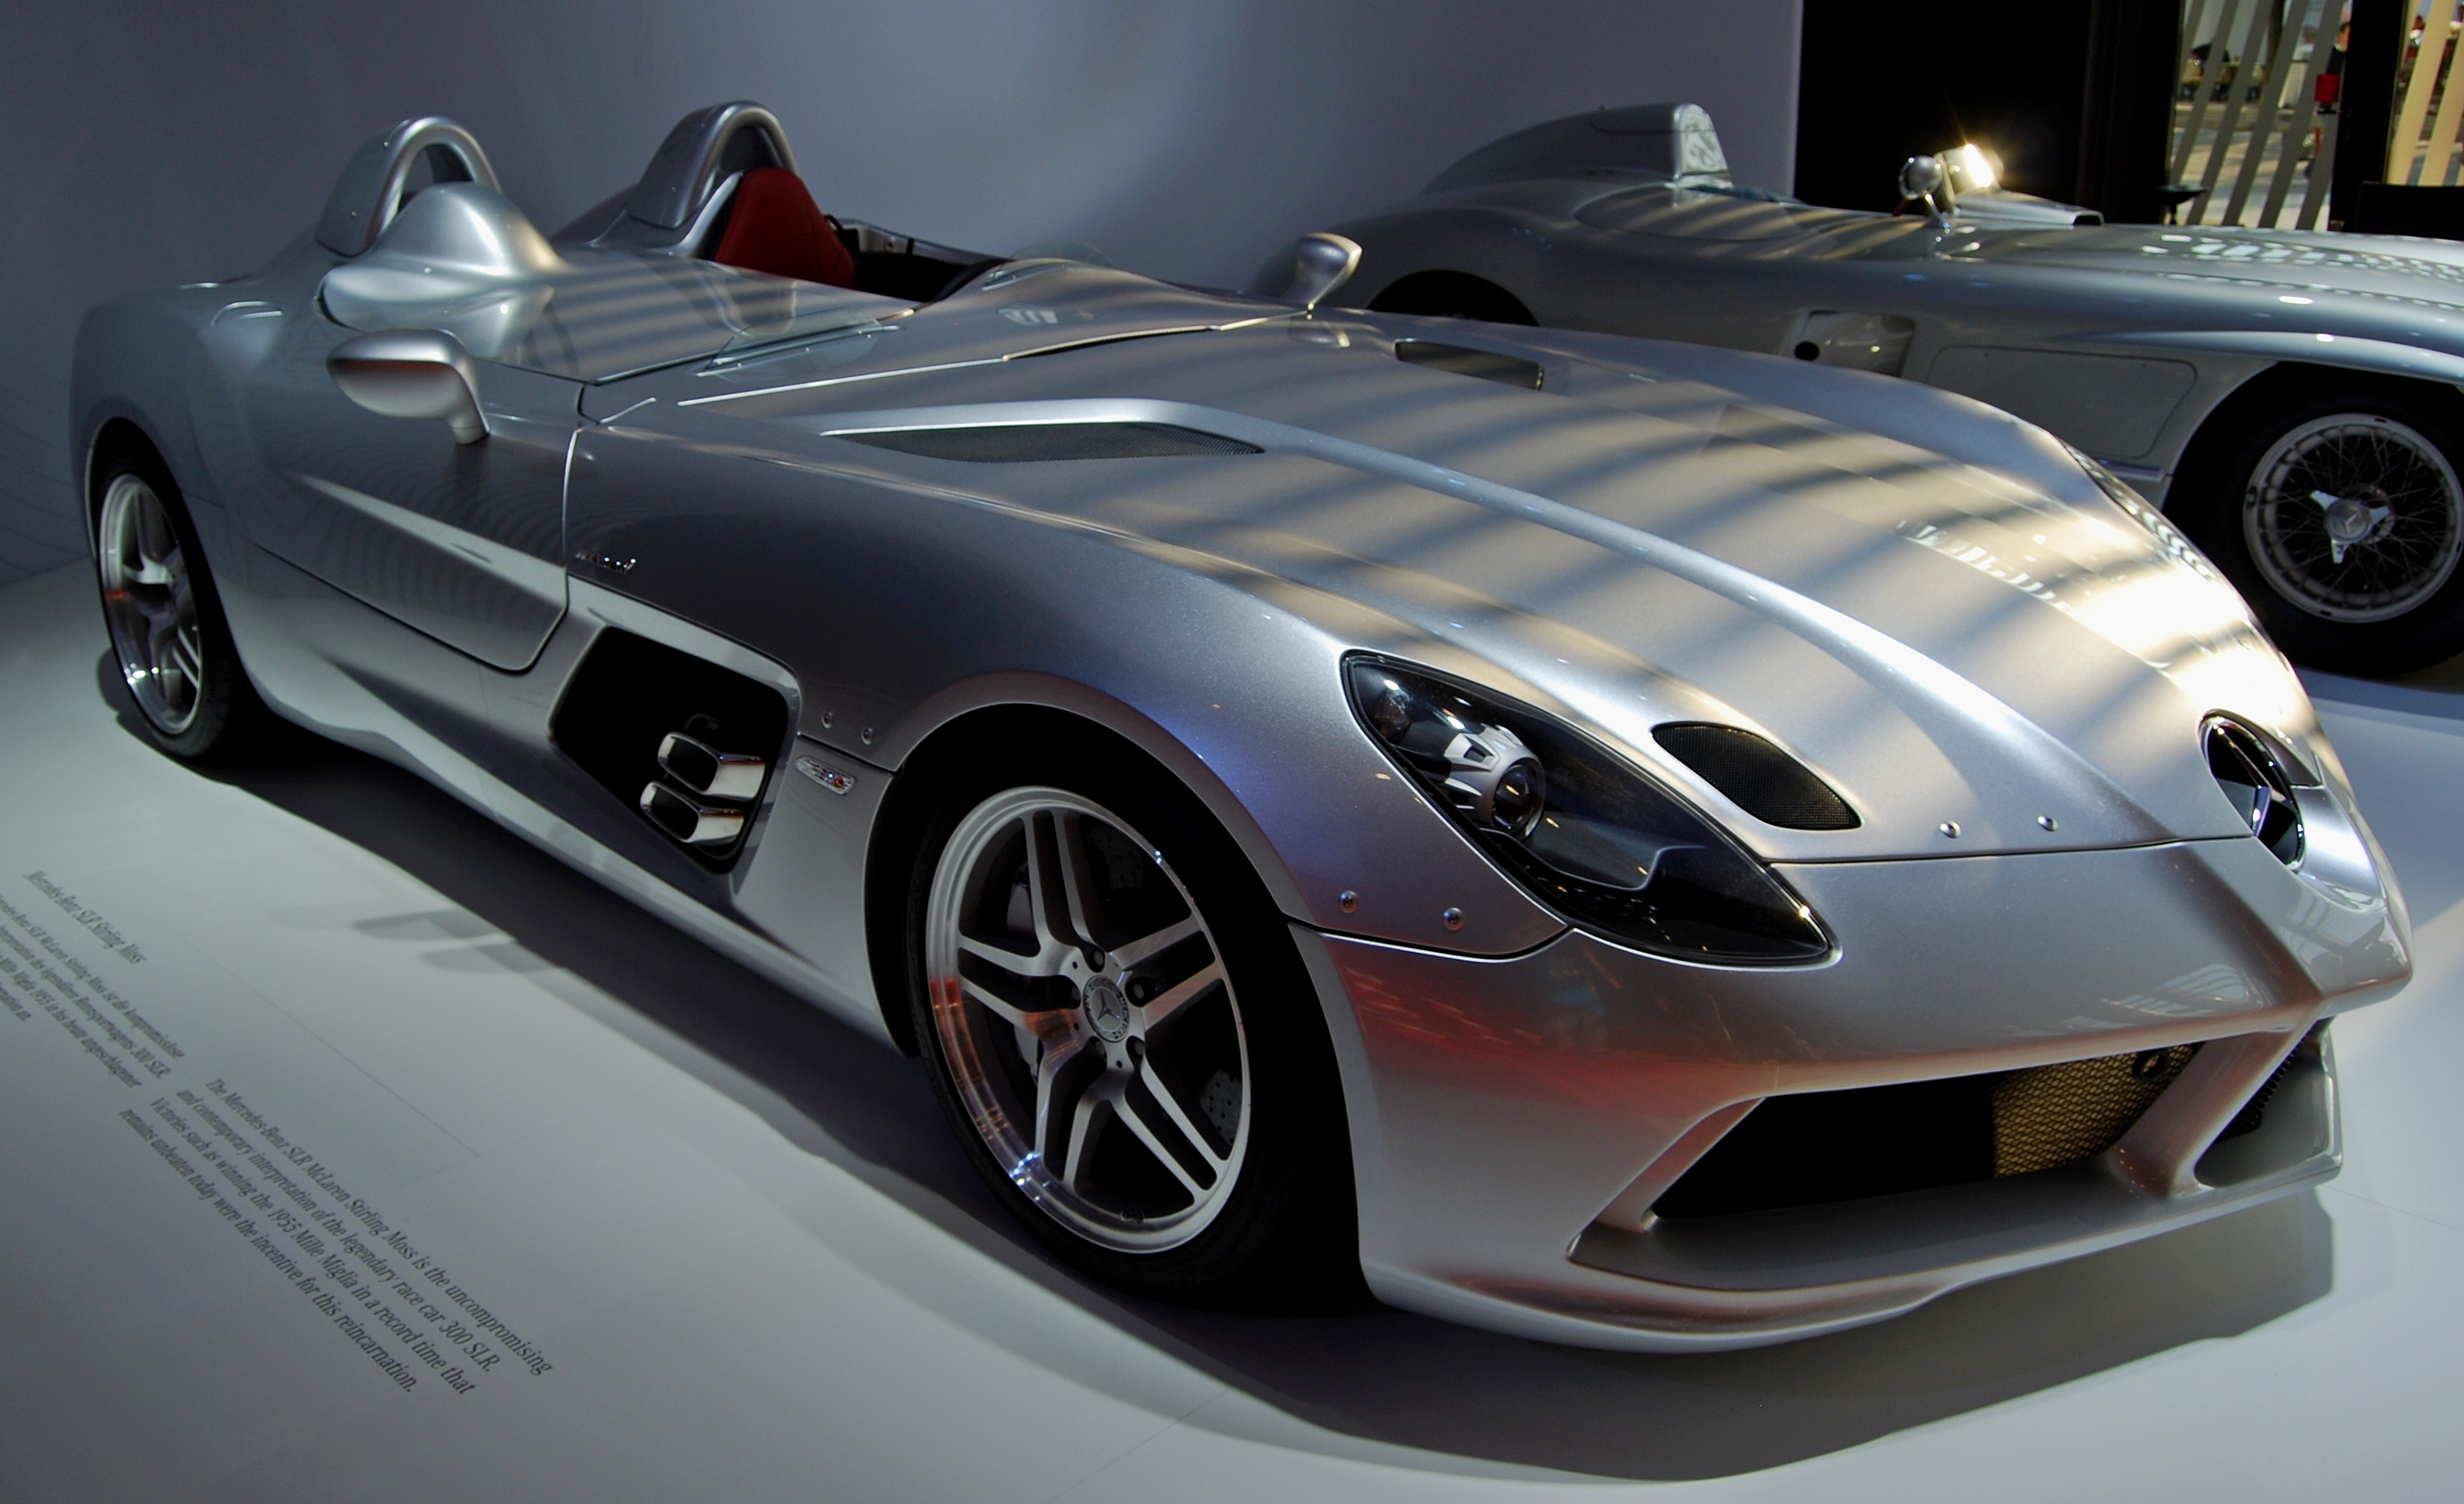 datei:mercedes-benz slr stirling moss – wikipedia